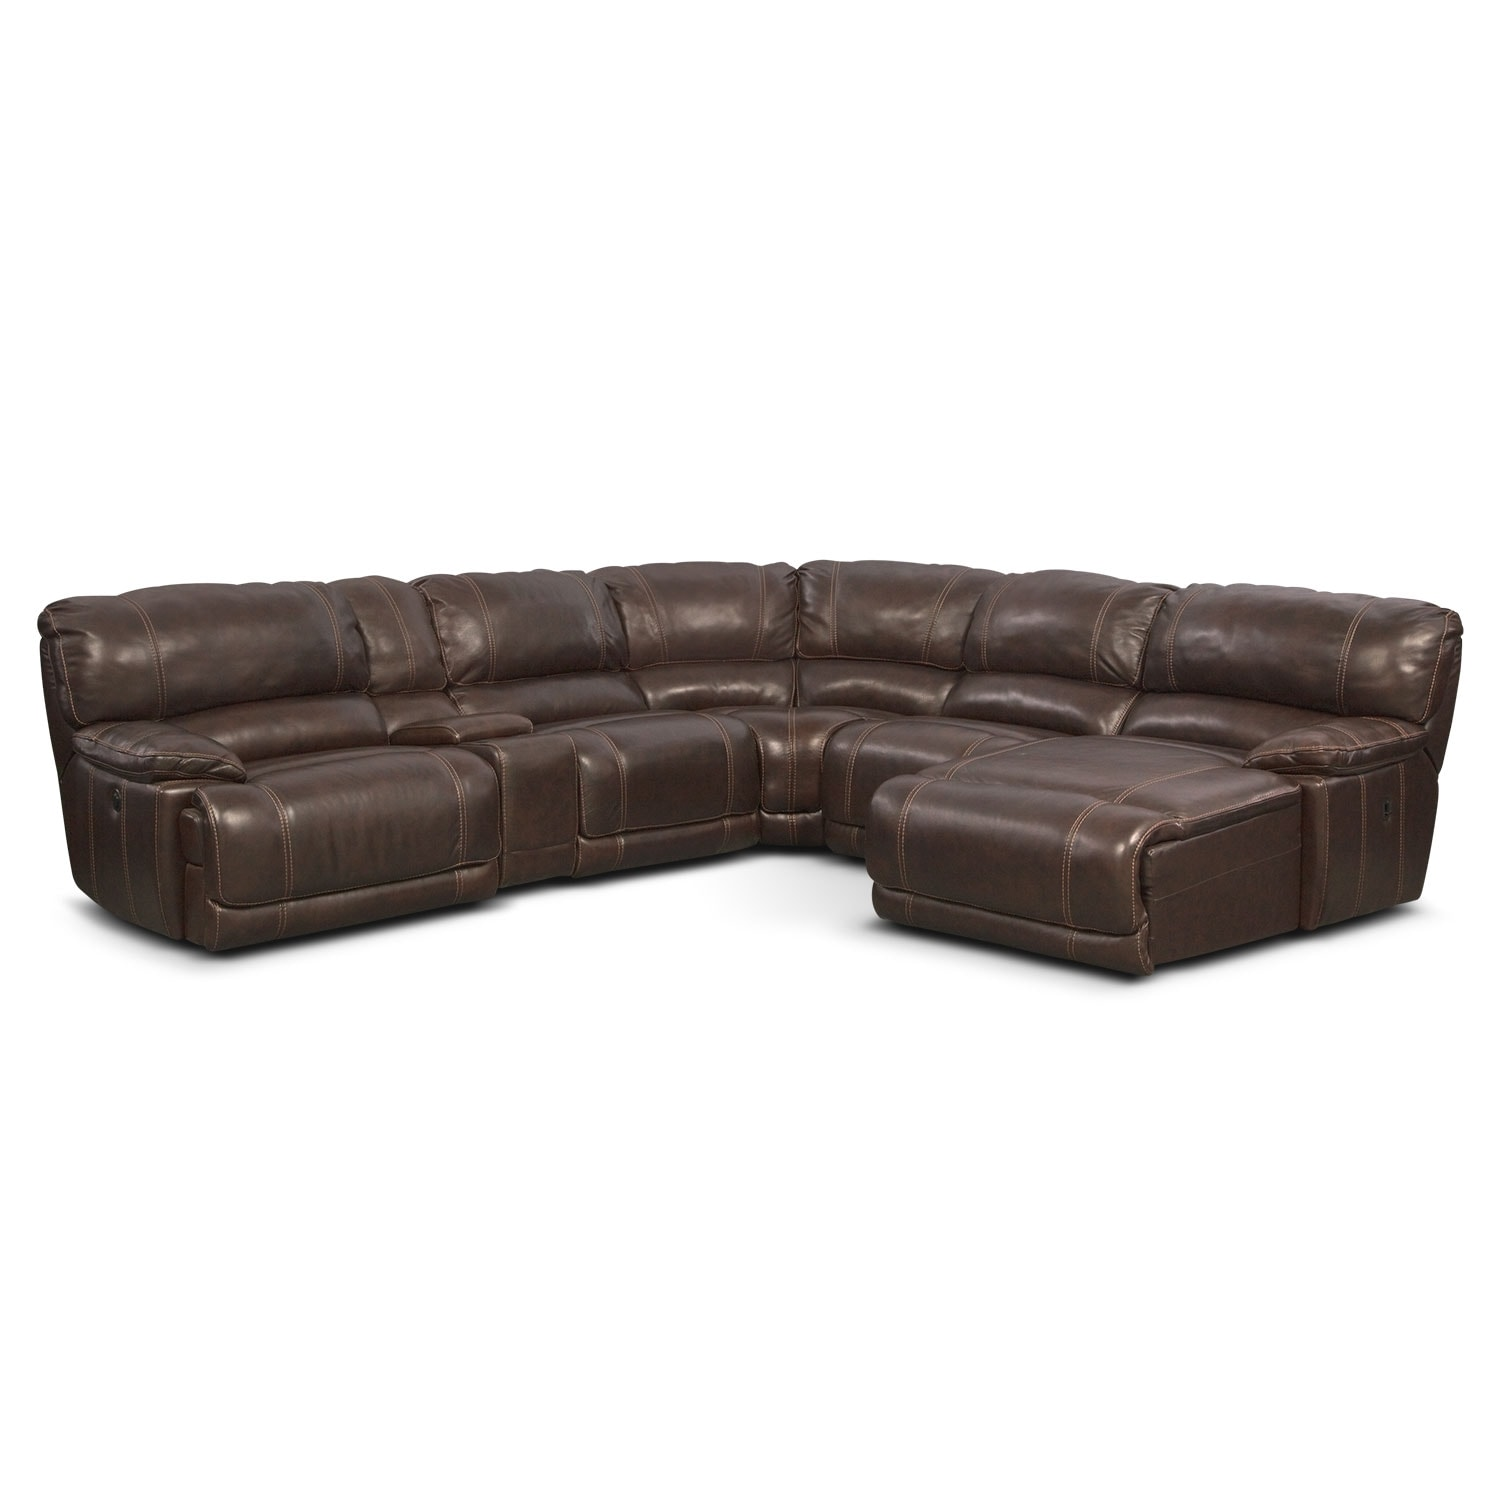 St. Malo 6-Piece Power Reclining Sectional with Chaise and 2 Reclining Seats